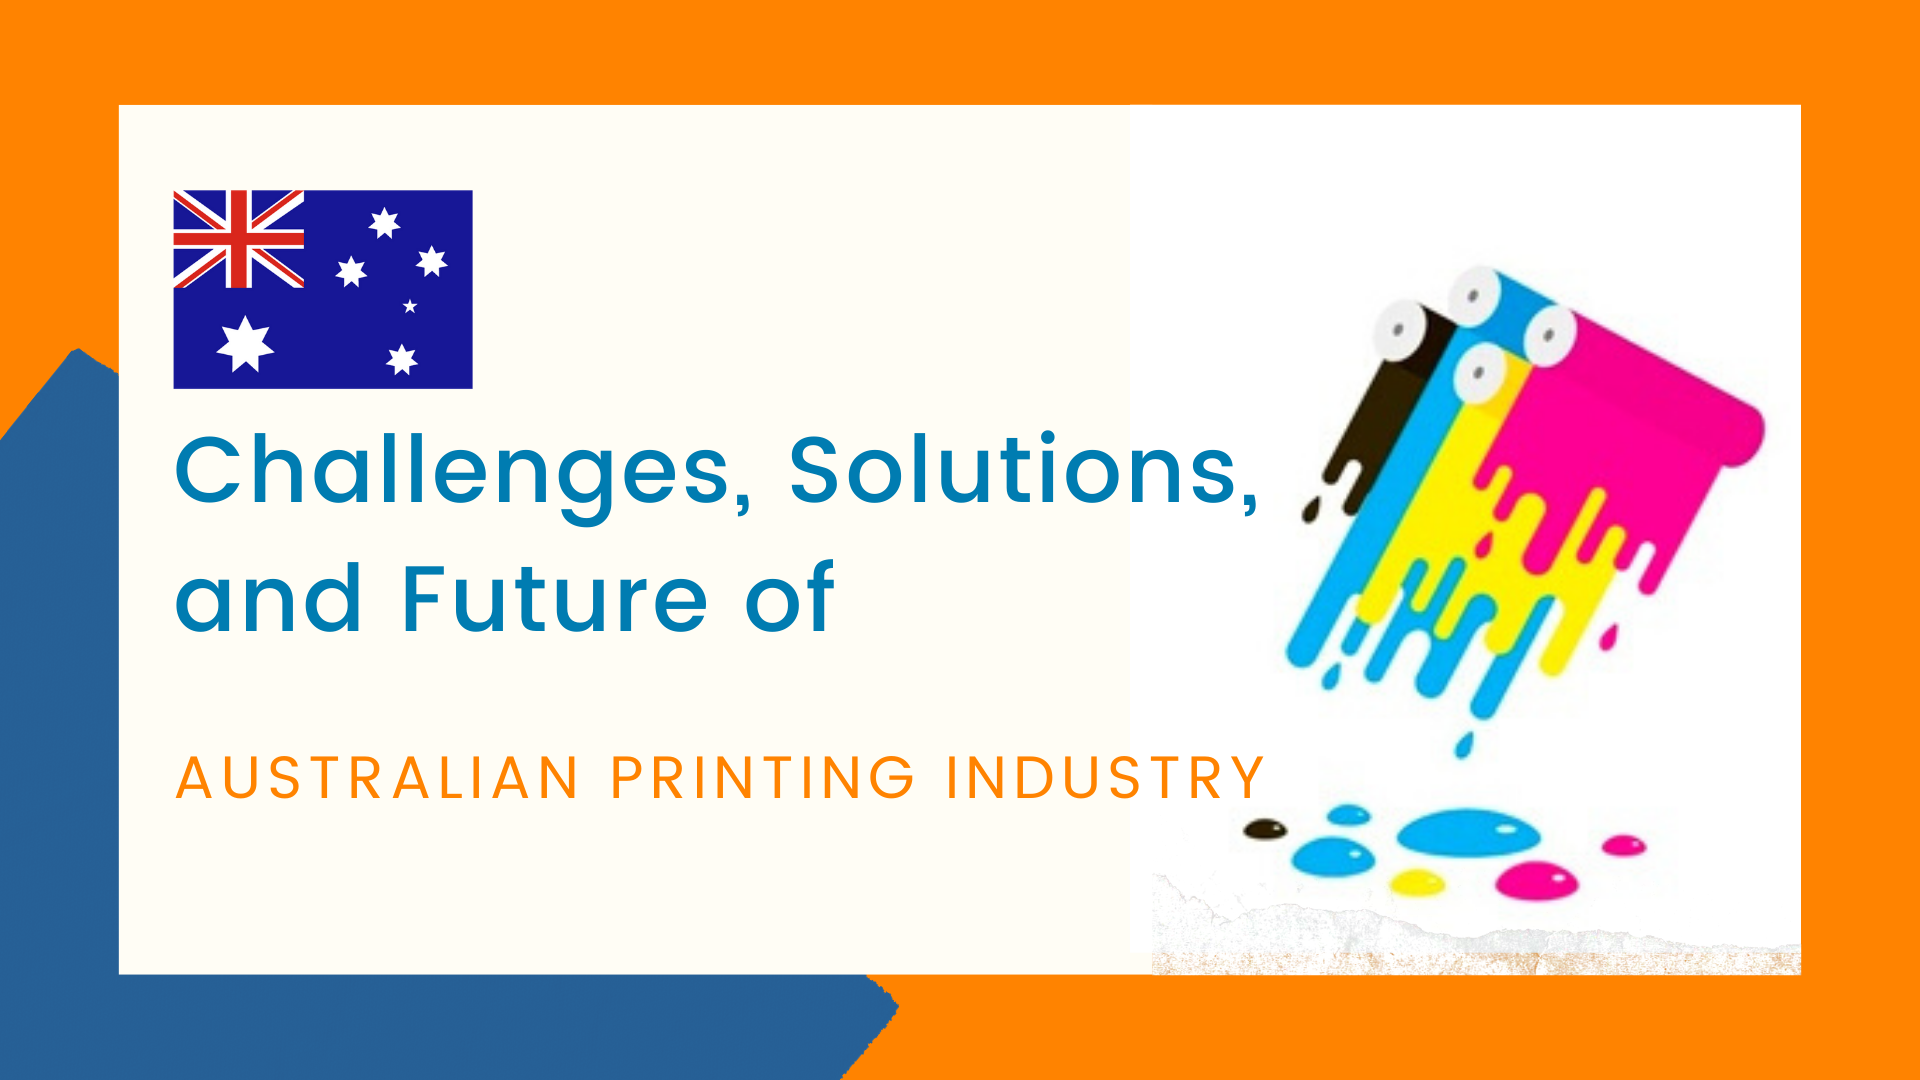 Challenges, Solutions, and Future of Australian Printing Industry